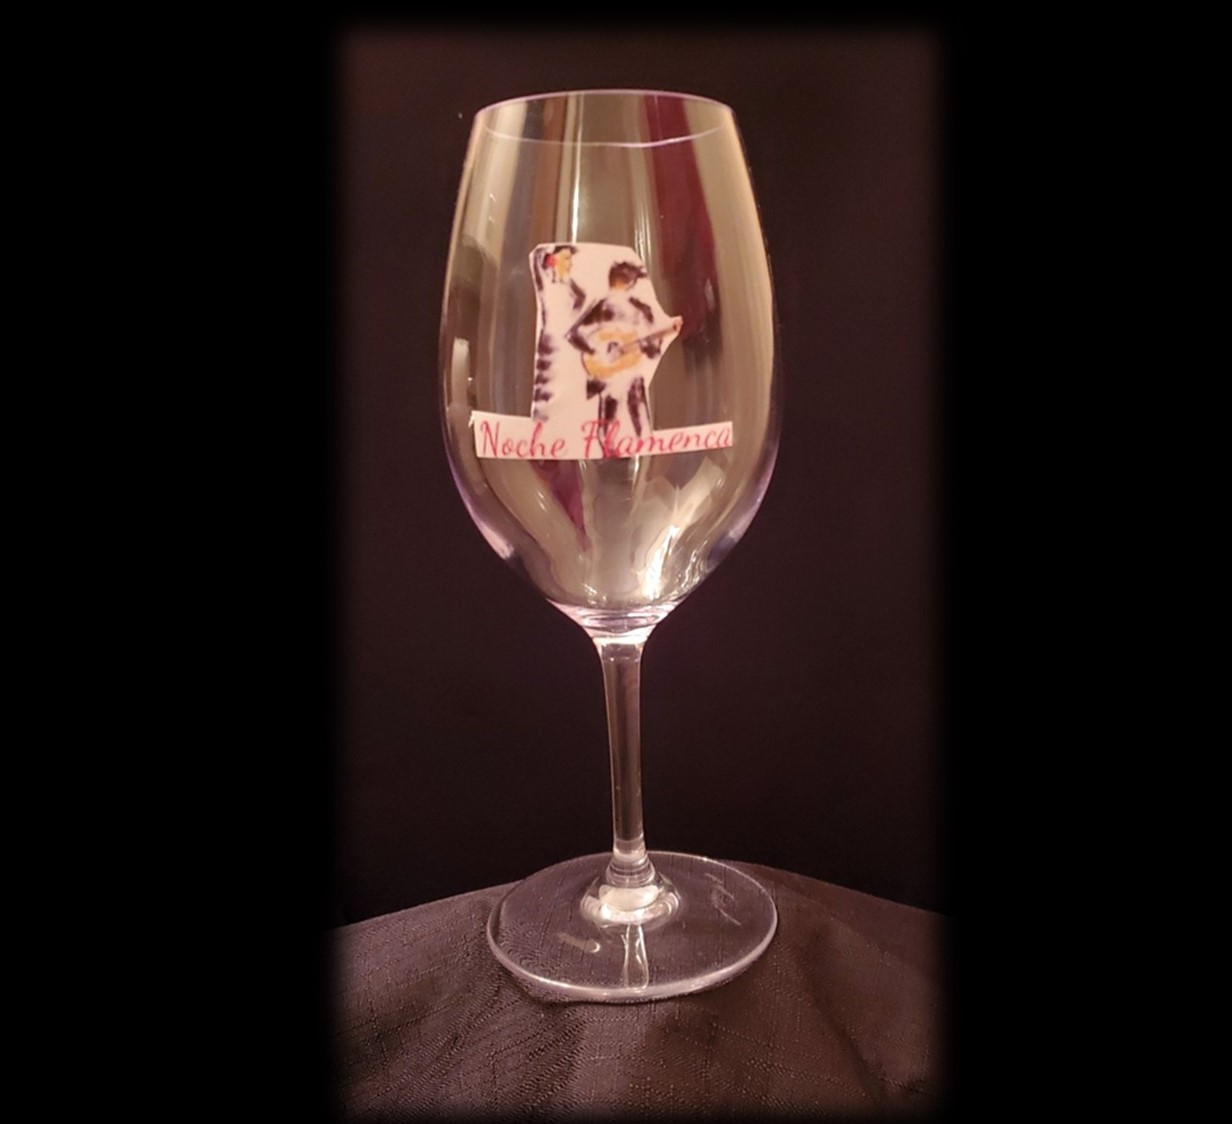 Noche Flamenca Wine Glass